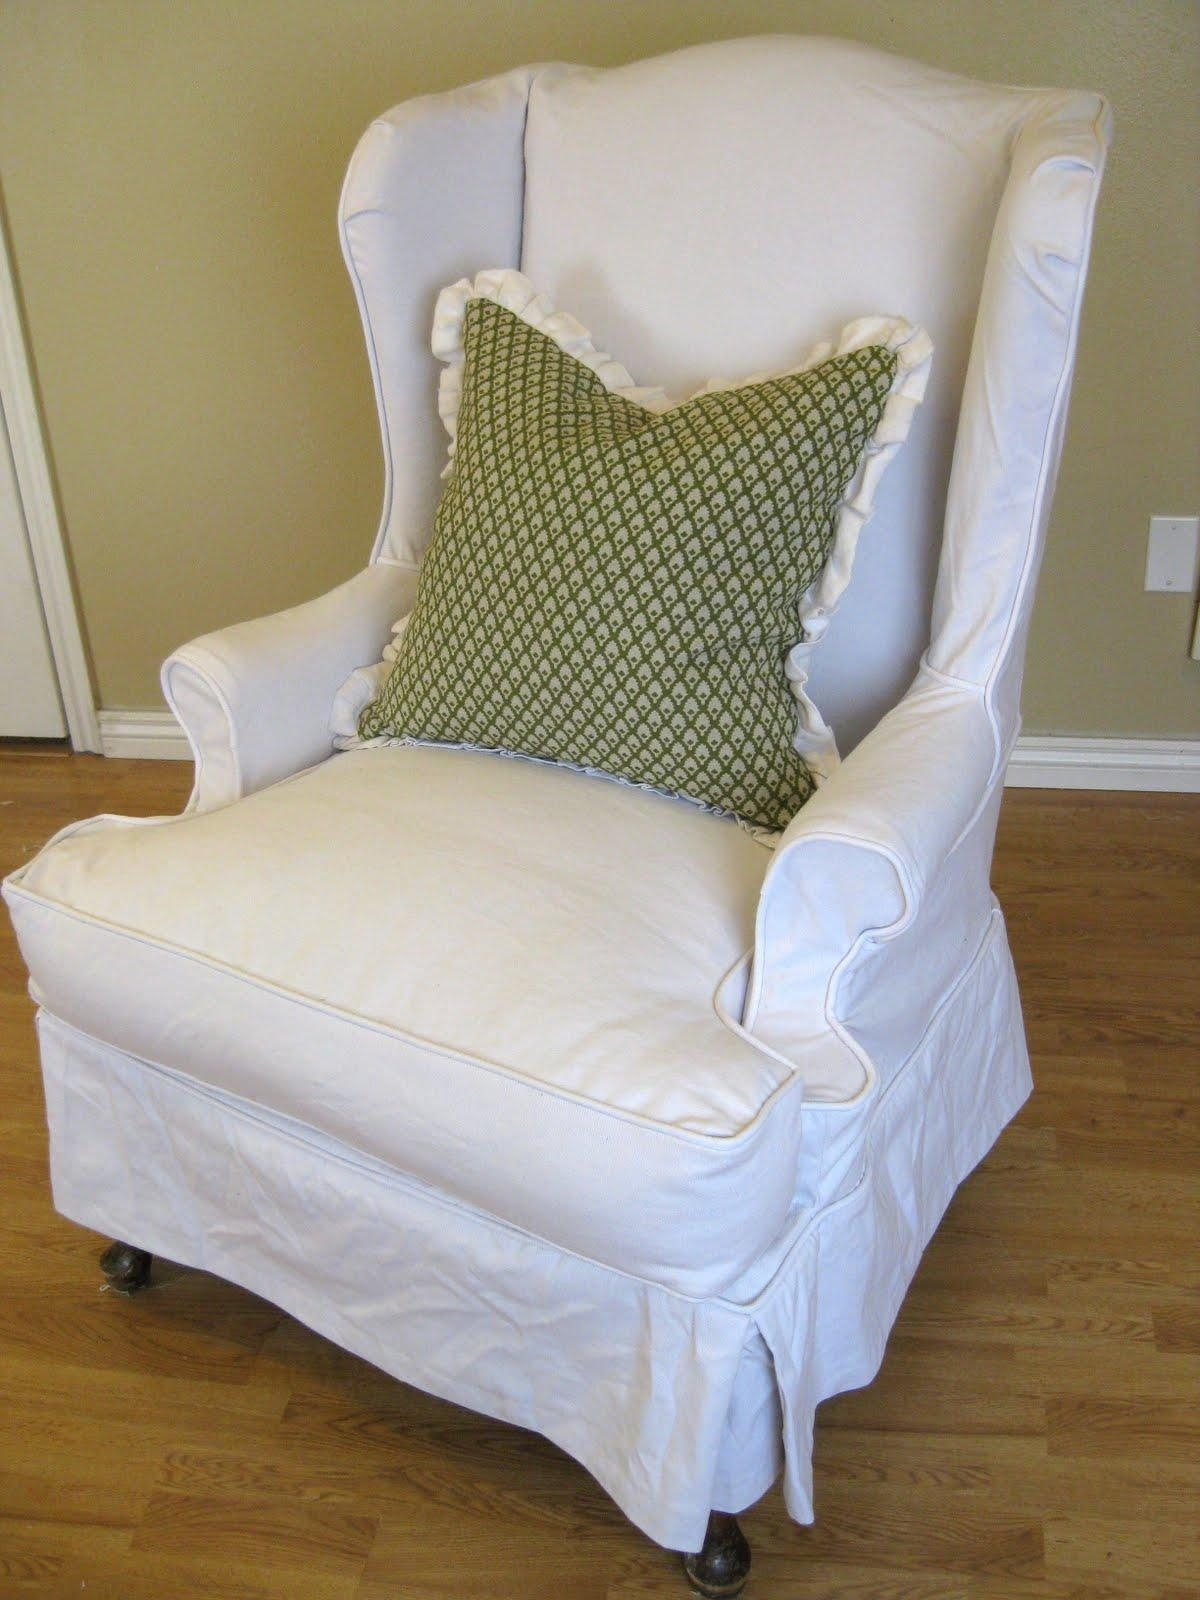 Ideas: Chic Pottery Barn Slipcovers For Better Sofa And Chair Look Pertaining To Pottery Barn Chair Slipcovers (Image 7 of 20)